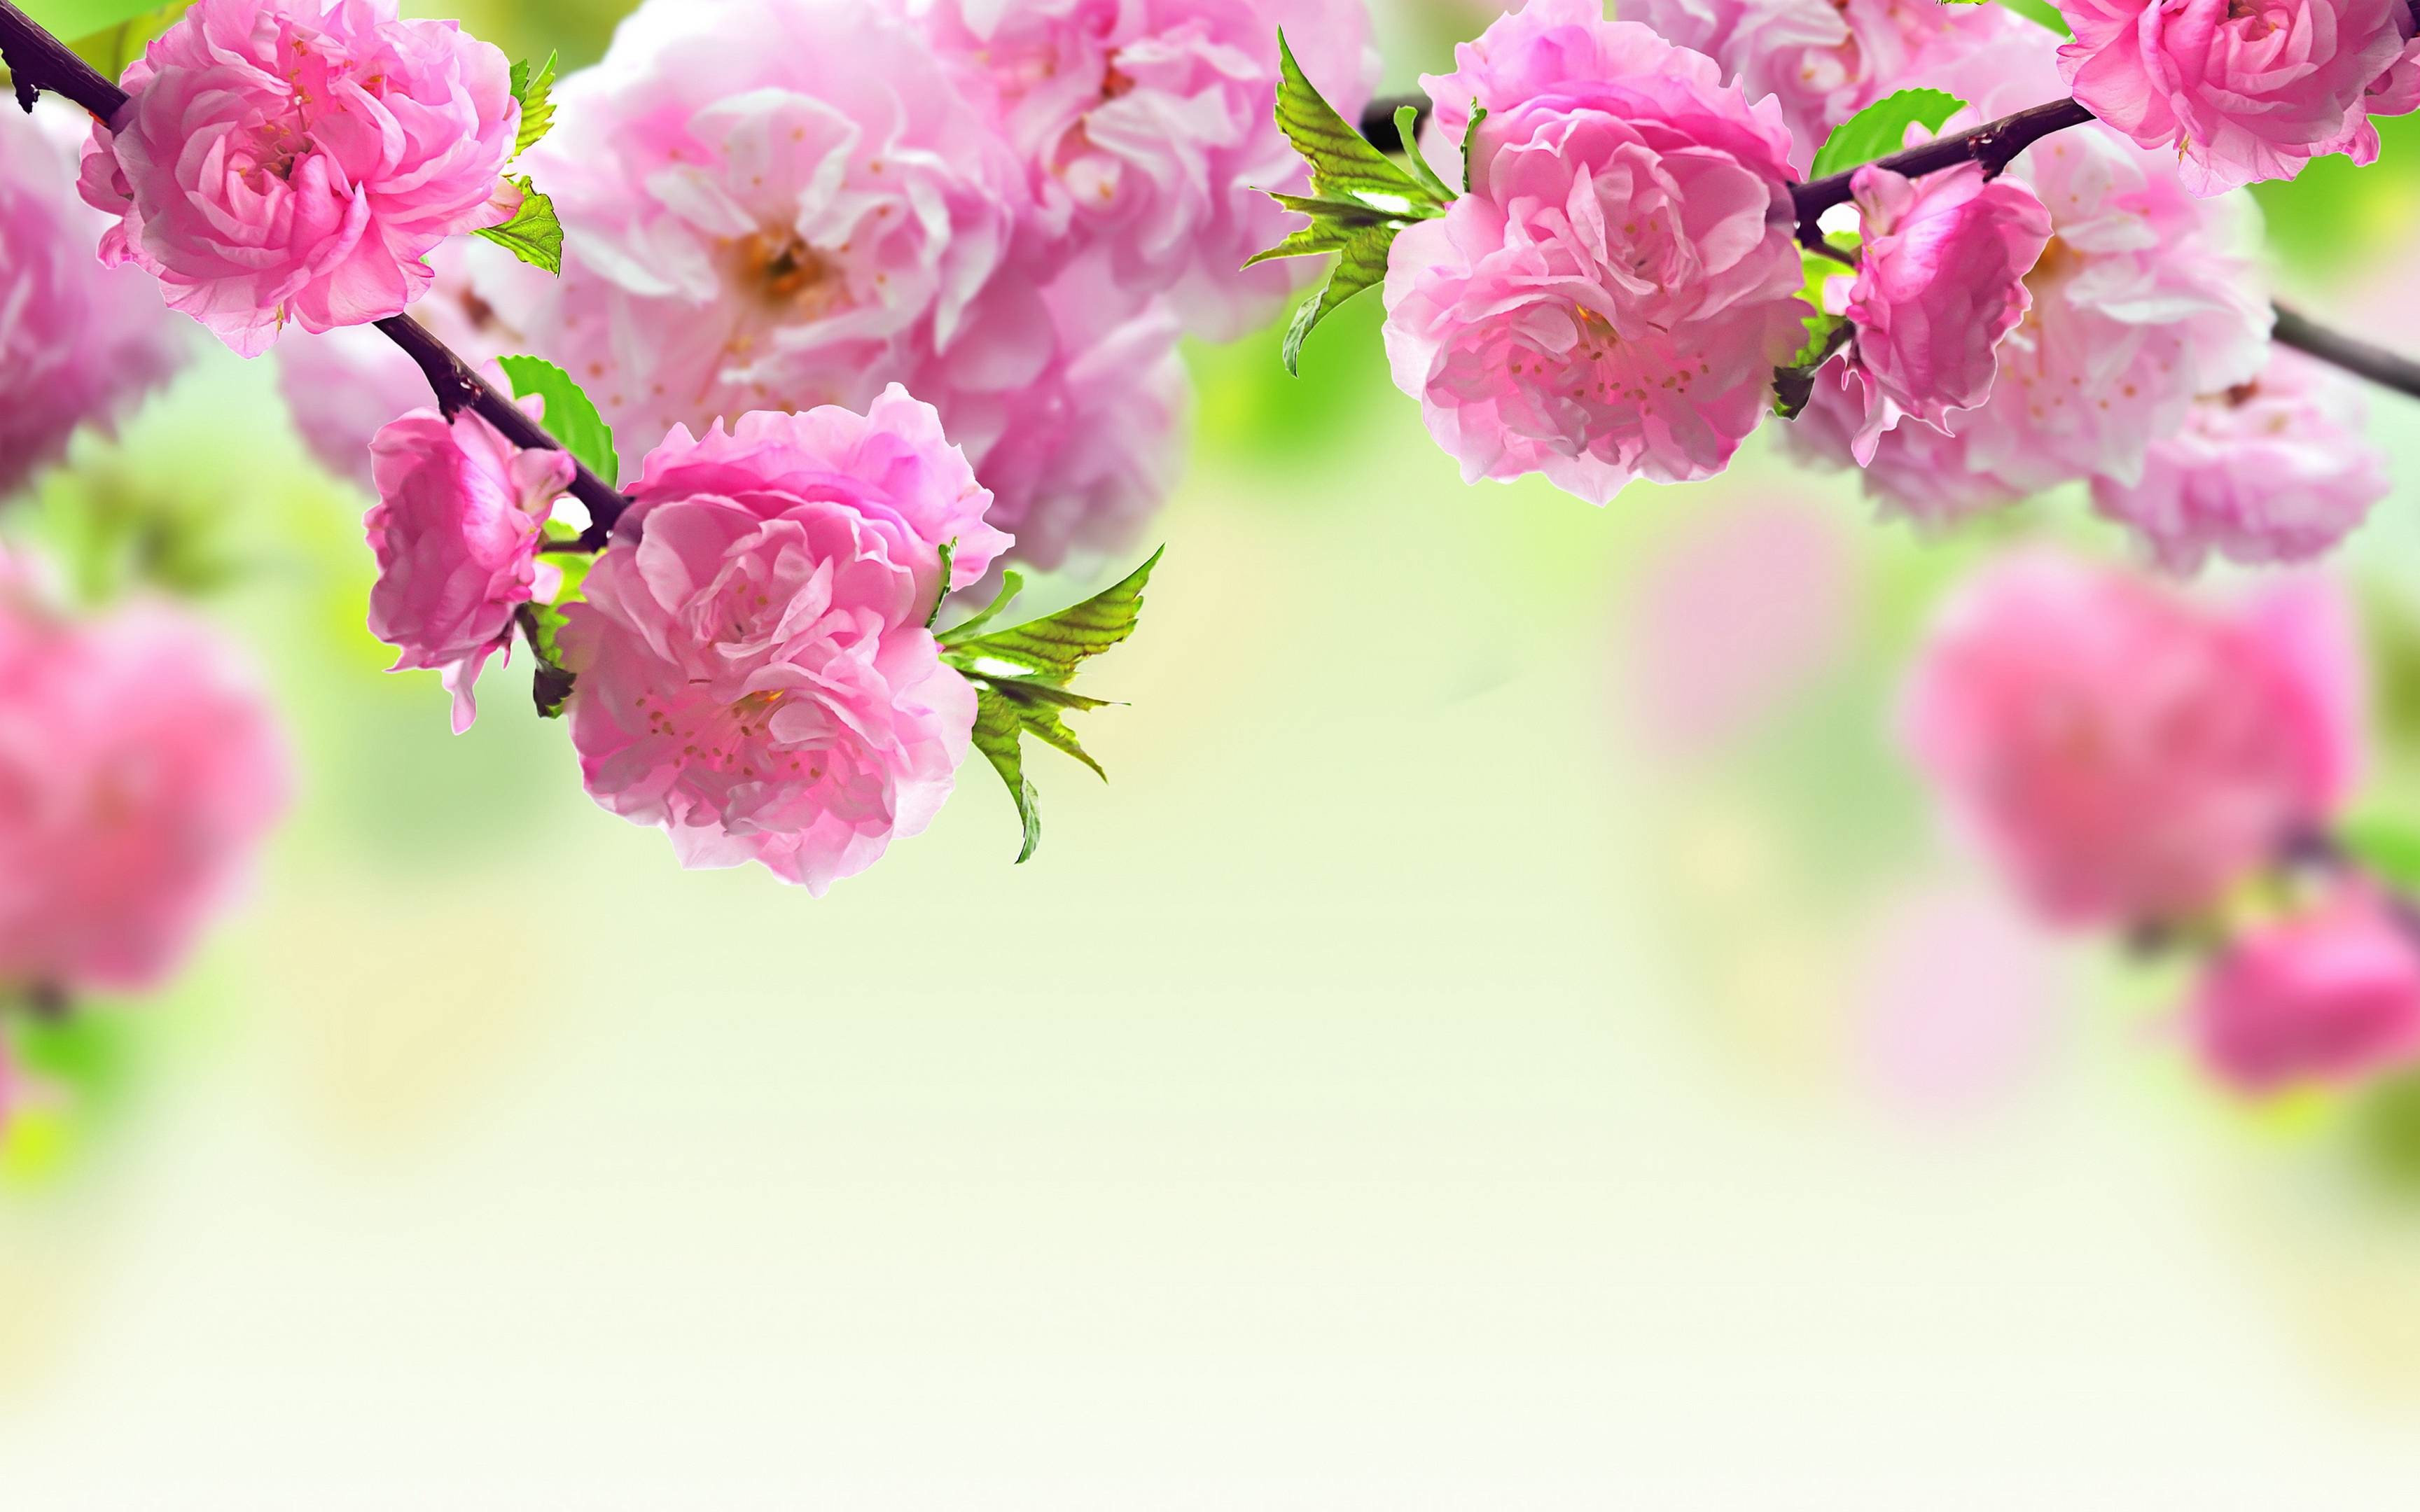 Backgrounds of flowers 65 images 3456x2160 tags 3456x2160 flower background mightylinksfo